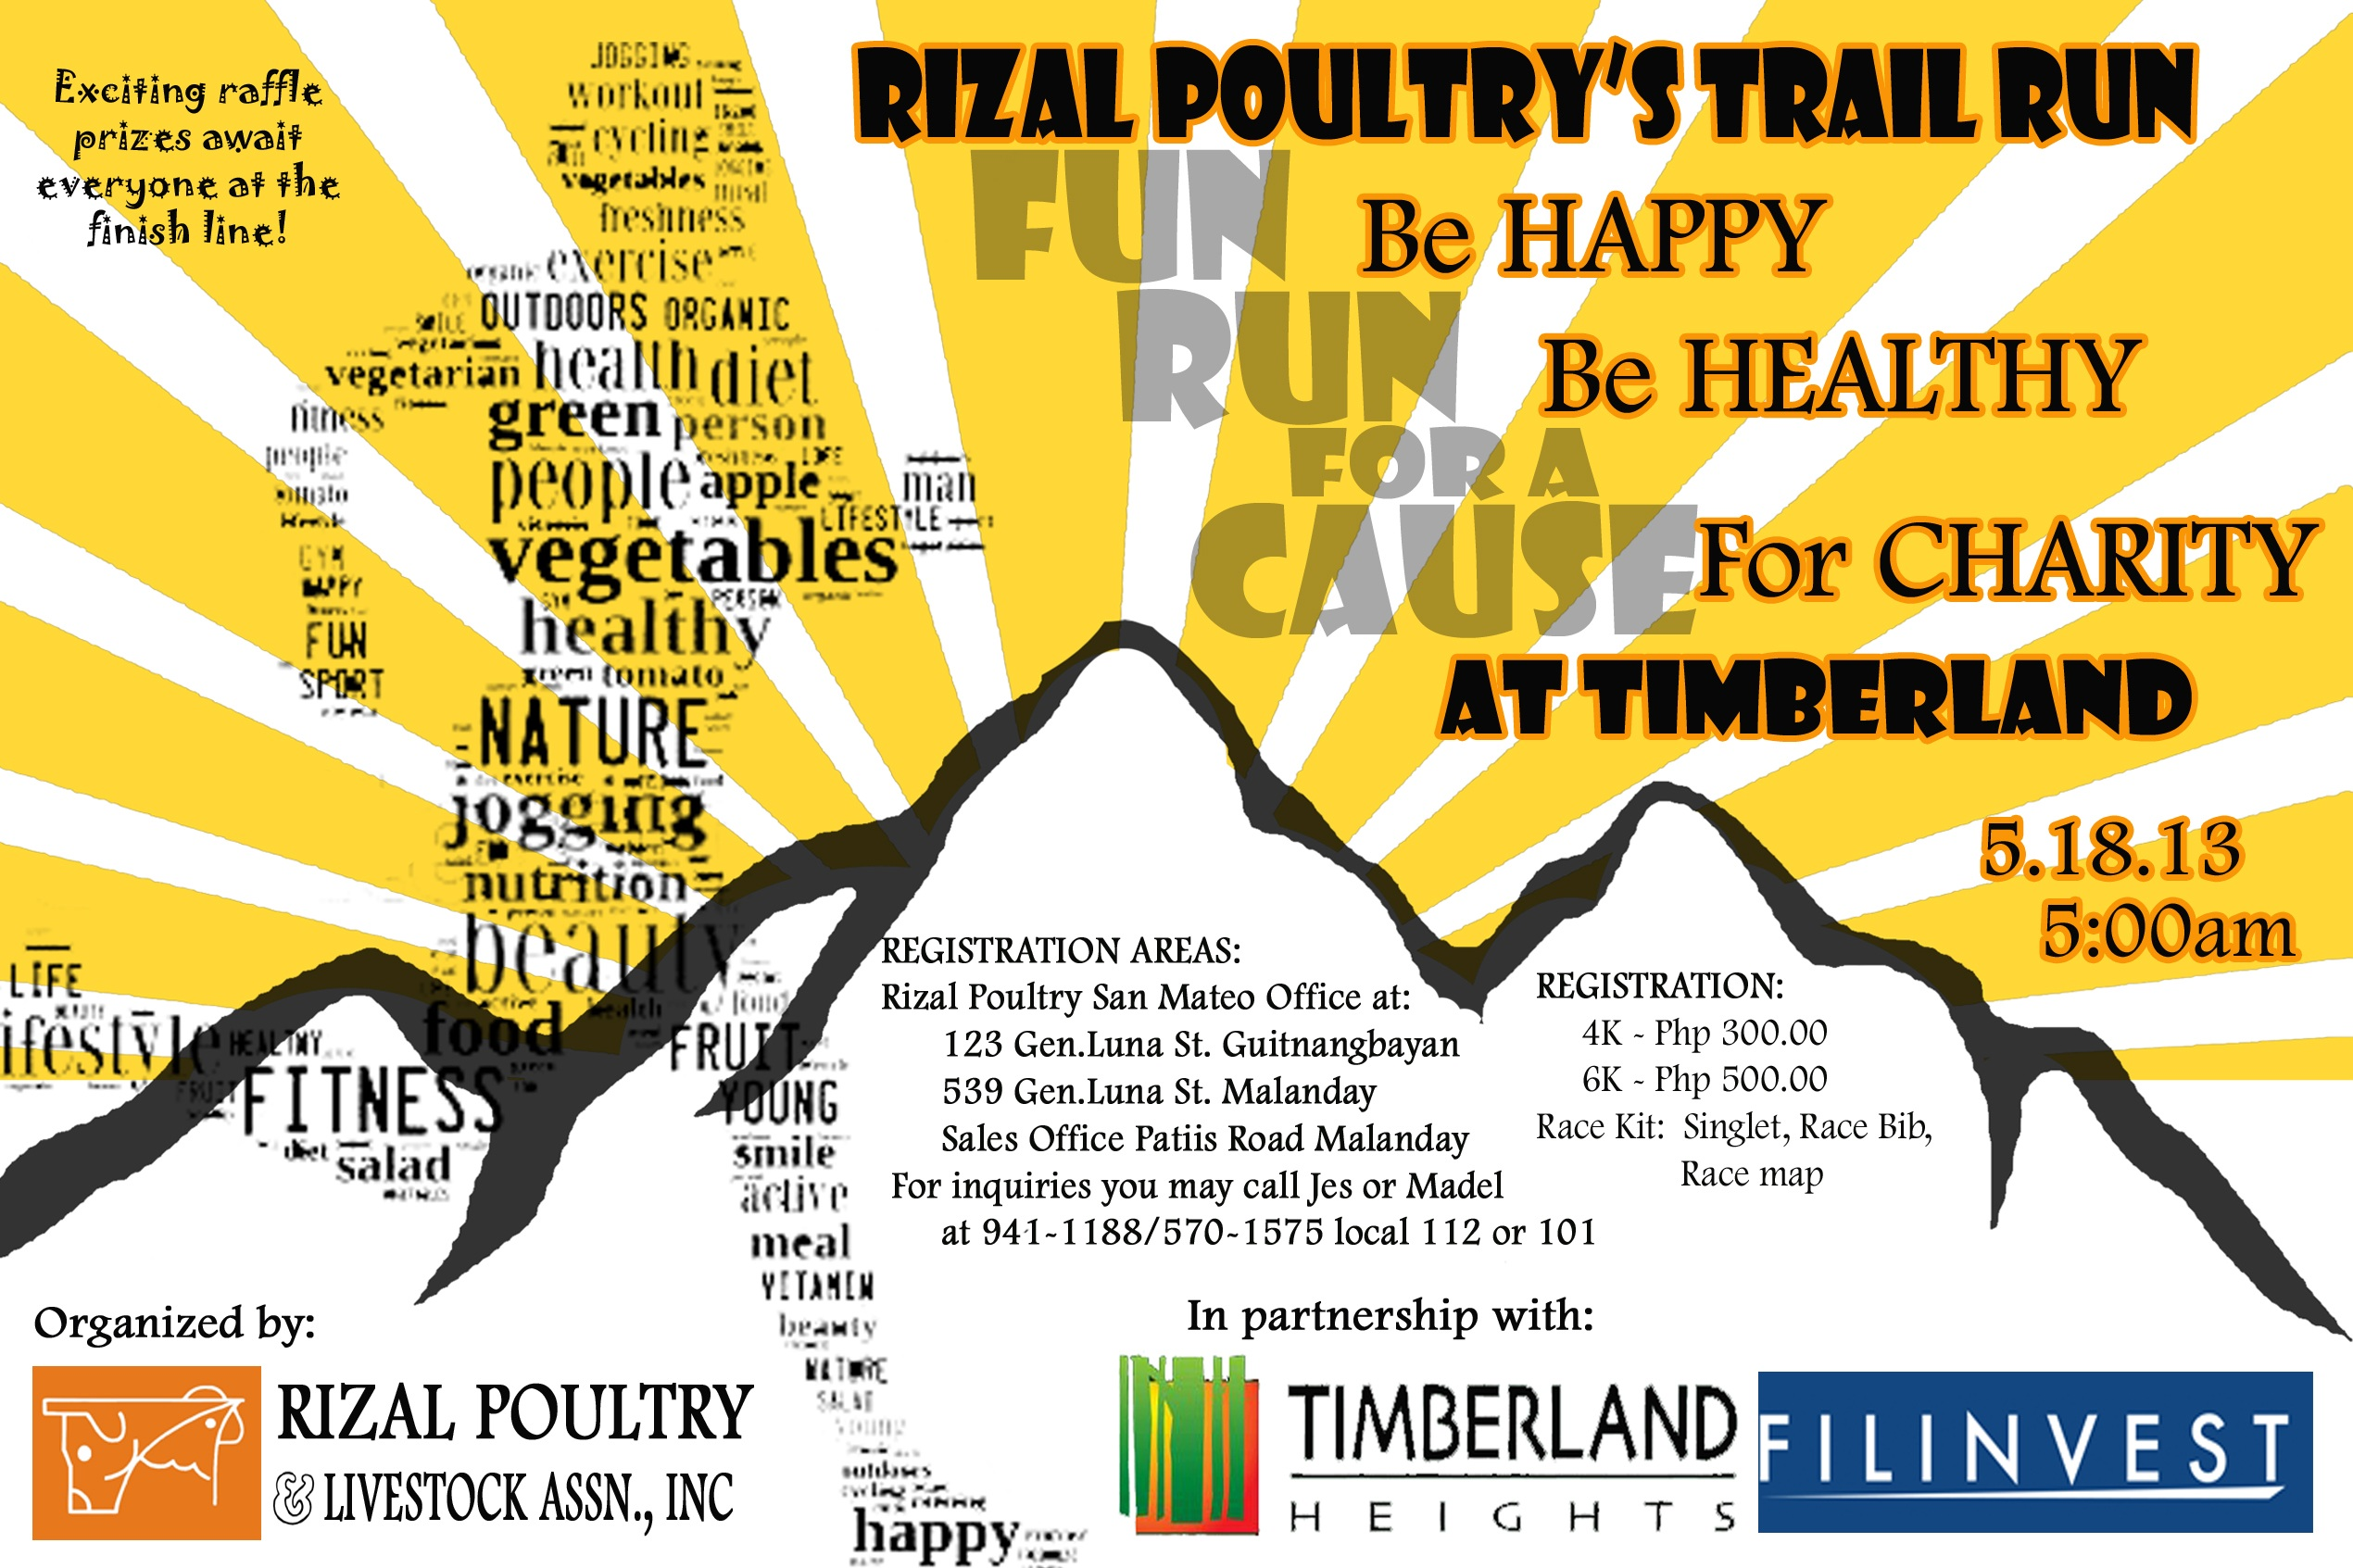 rizal-poultry-run-for-a-cause-2013-poster